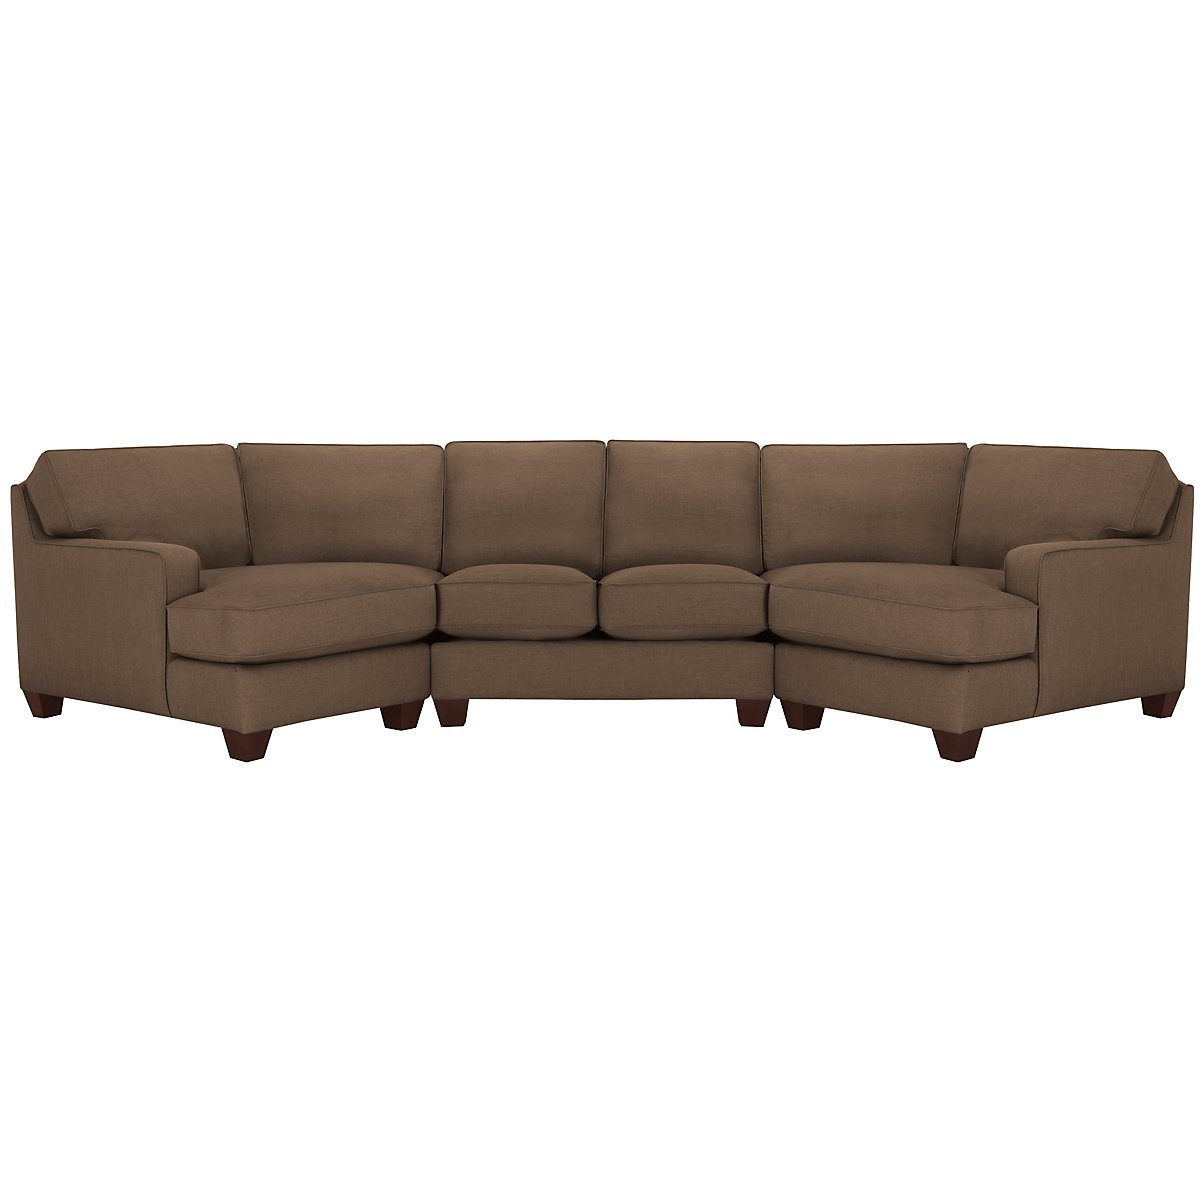 City furniture york dk brown fabric dual cuddler sectional for Brown fabric couch